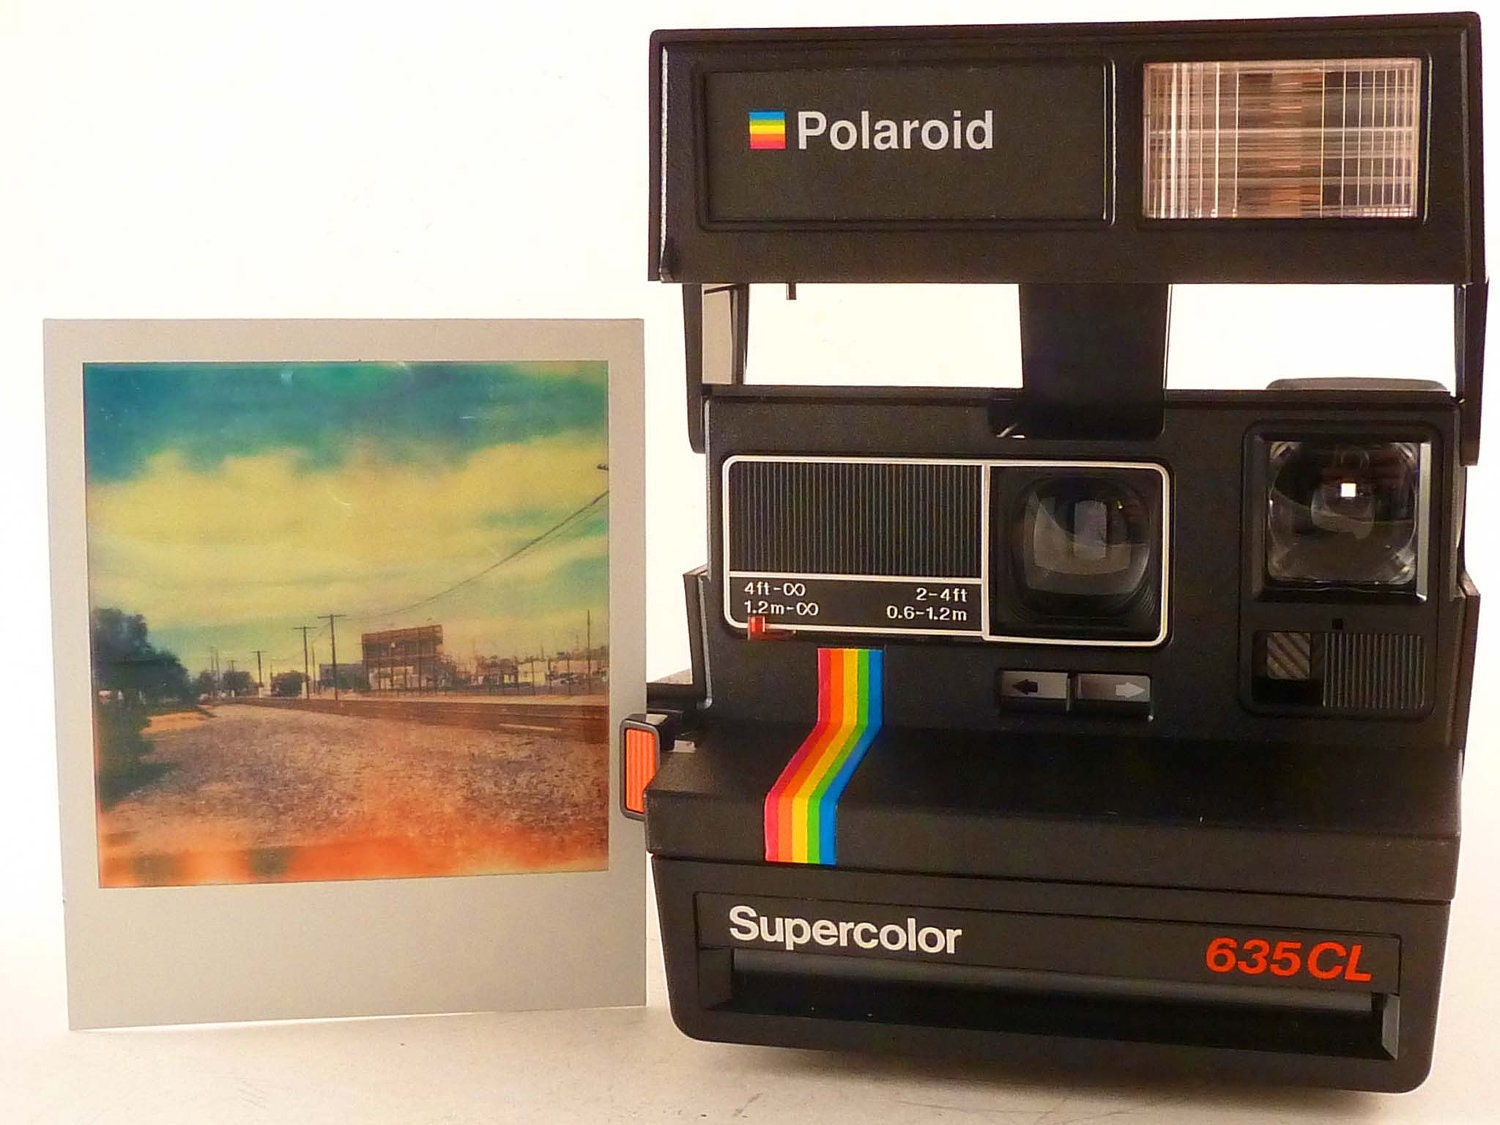 working supercolor polaroid 635cl instant film camera. Black Bedroom Furniture Sets. Home Design Ideas